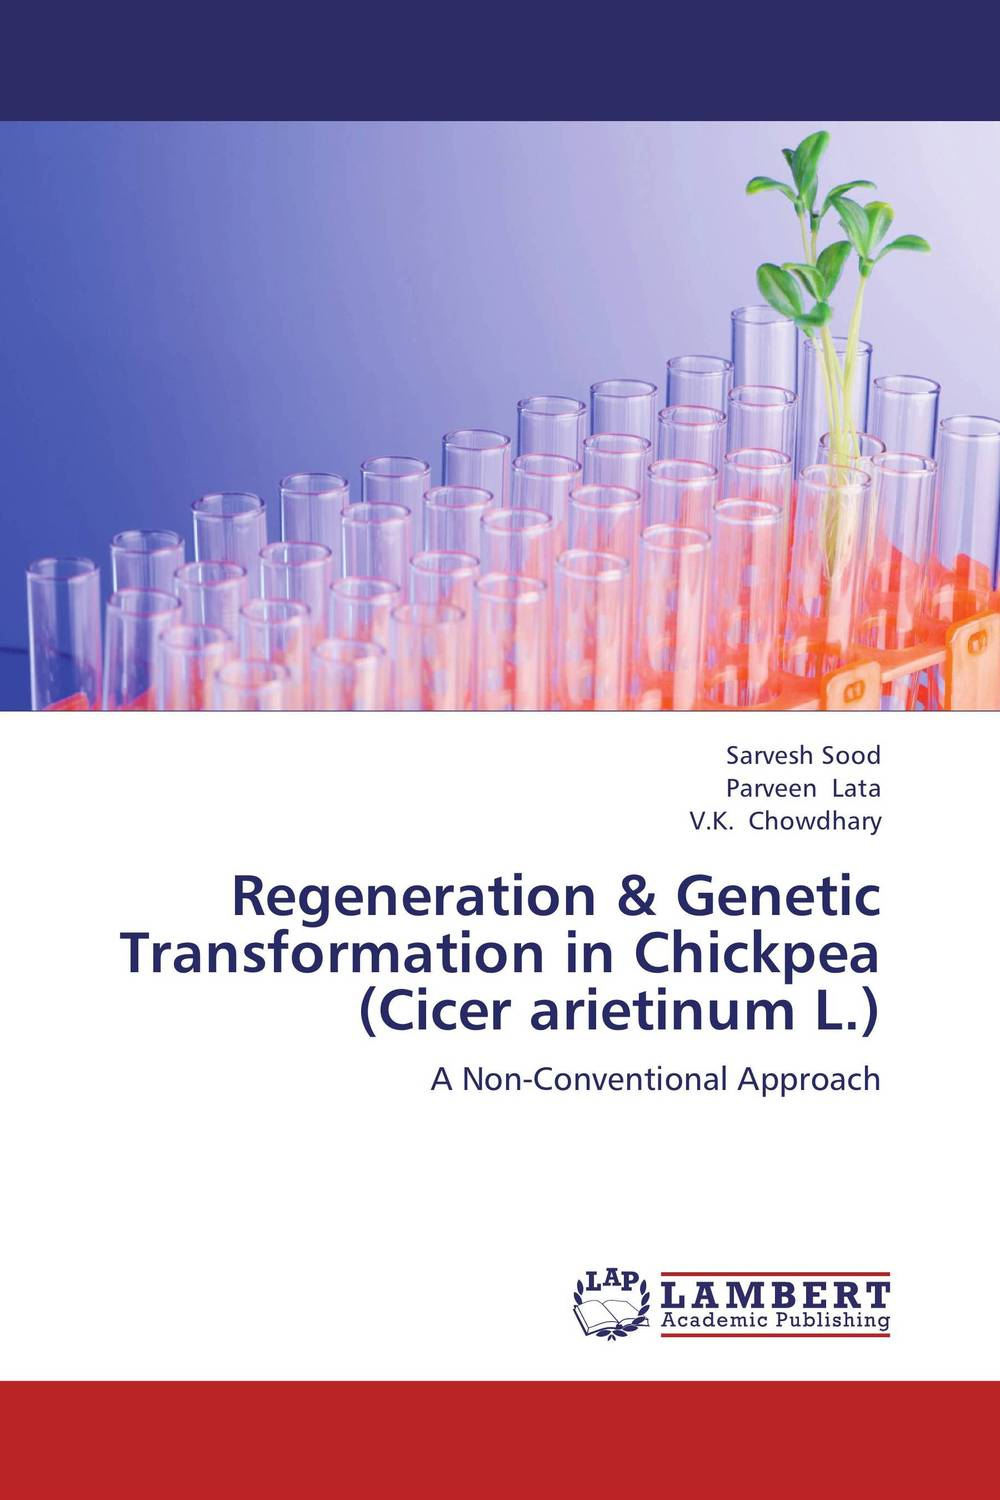 Regeneration & Genetic Transformation in Chickpea (Cicer arietinum L.) viruses cell transformation and cancer 5